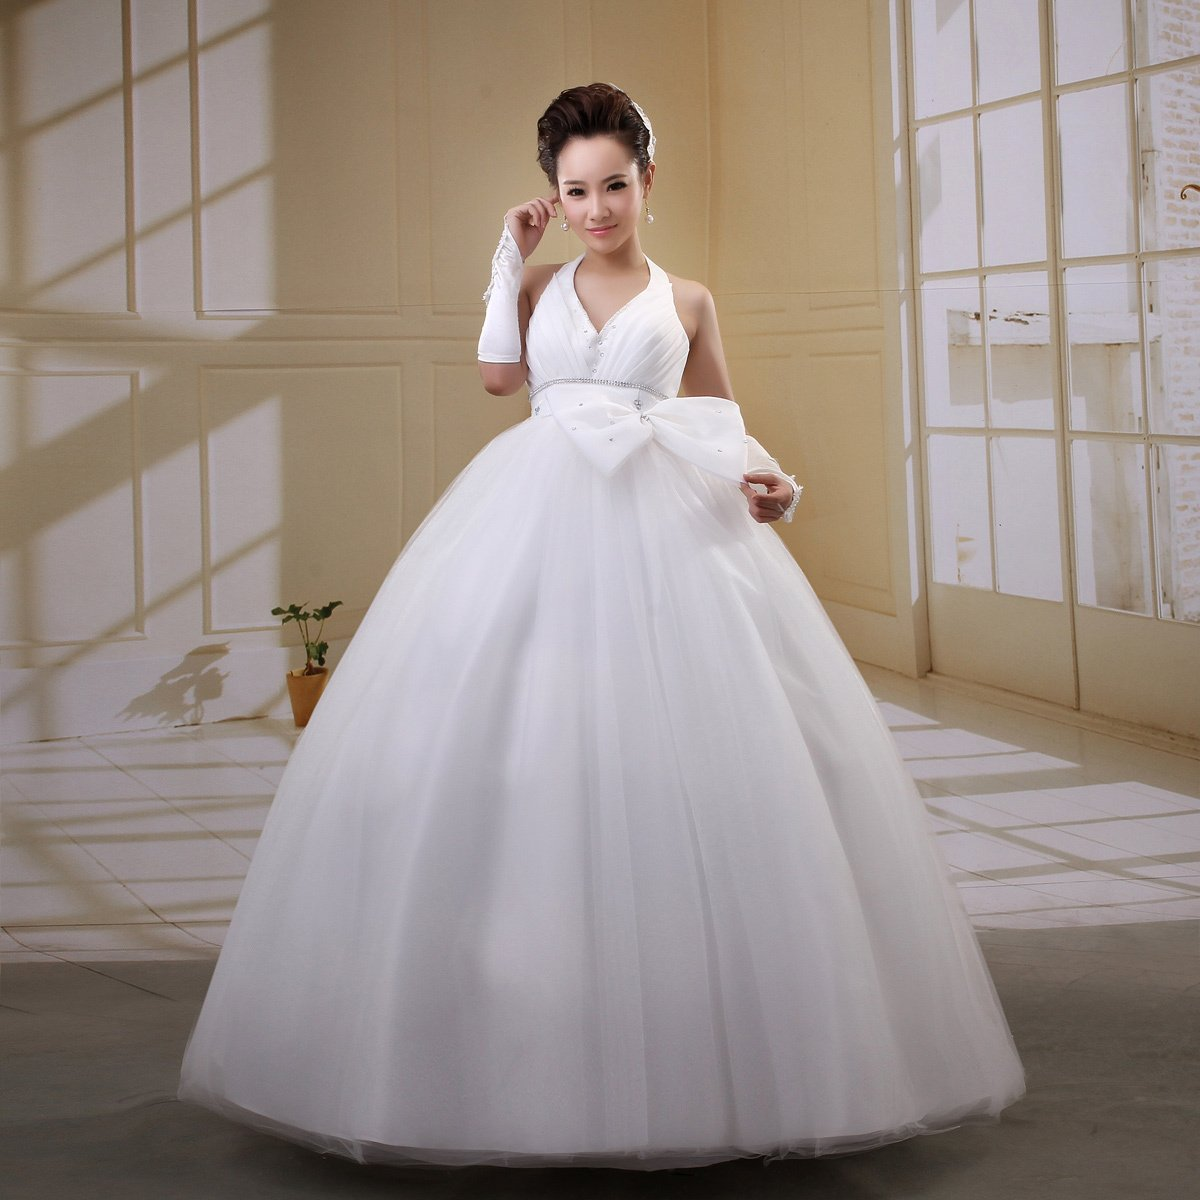 How Much Do Maggie Sottero Wedding Dresses Cost